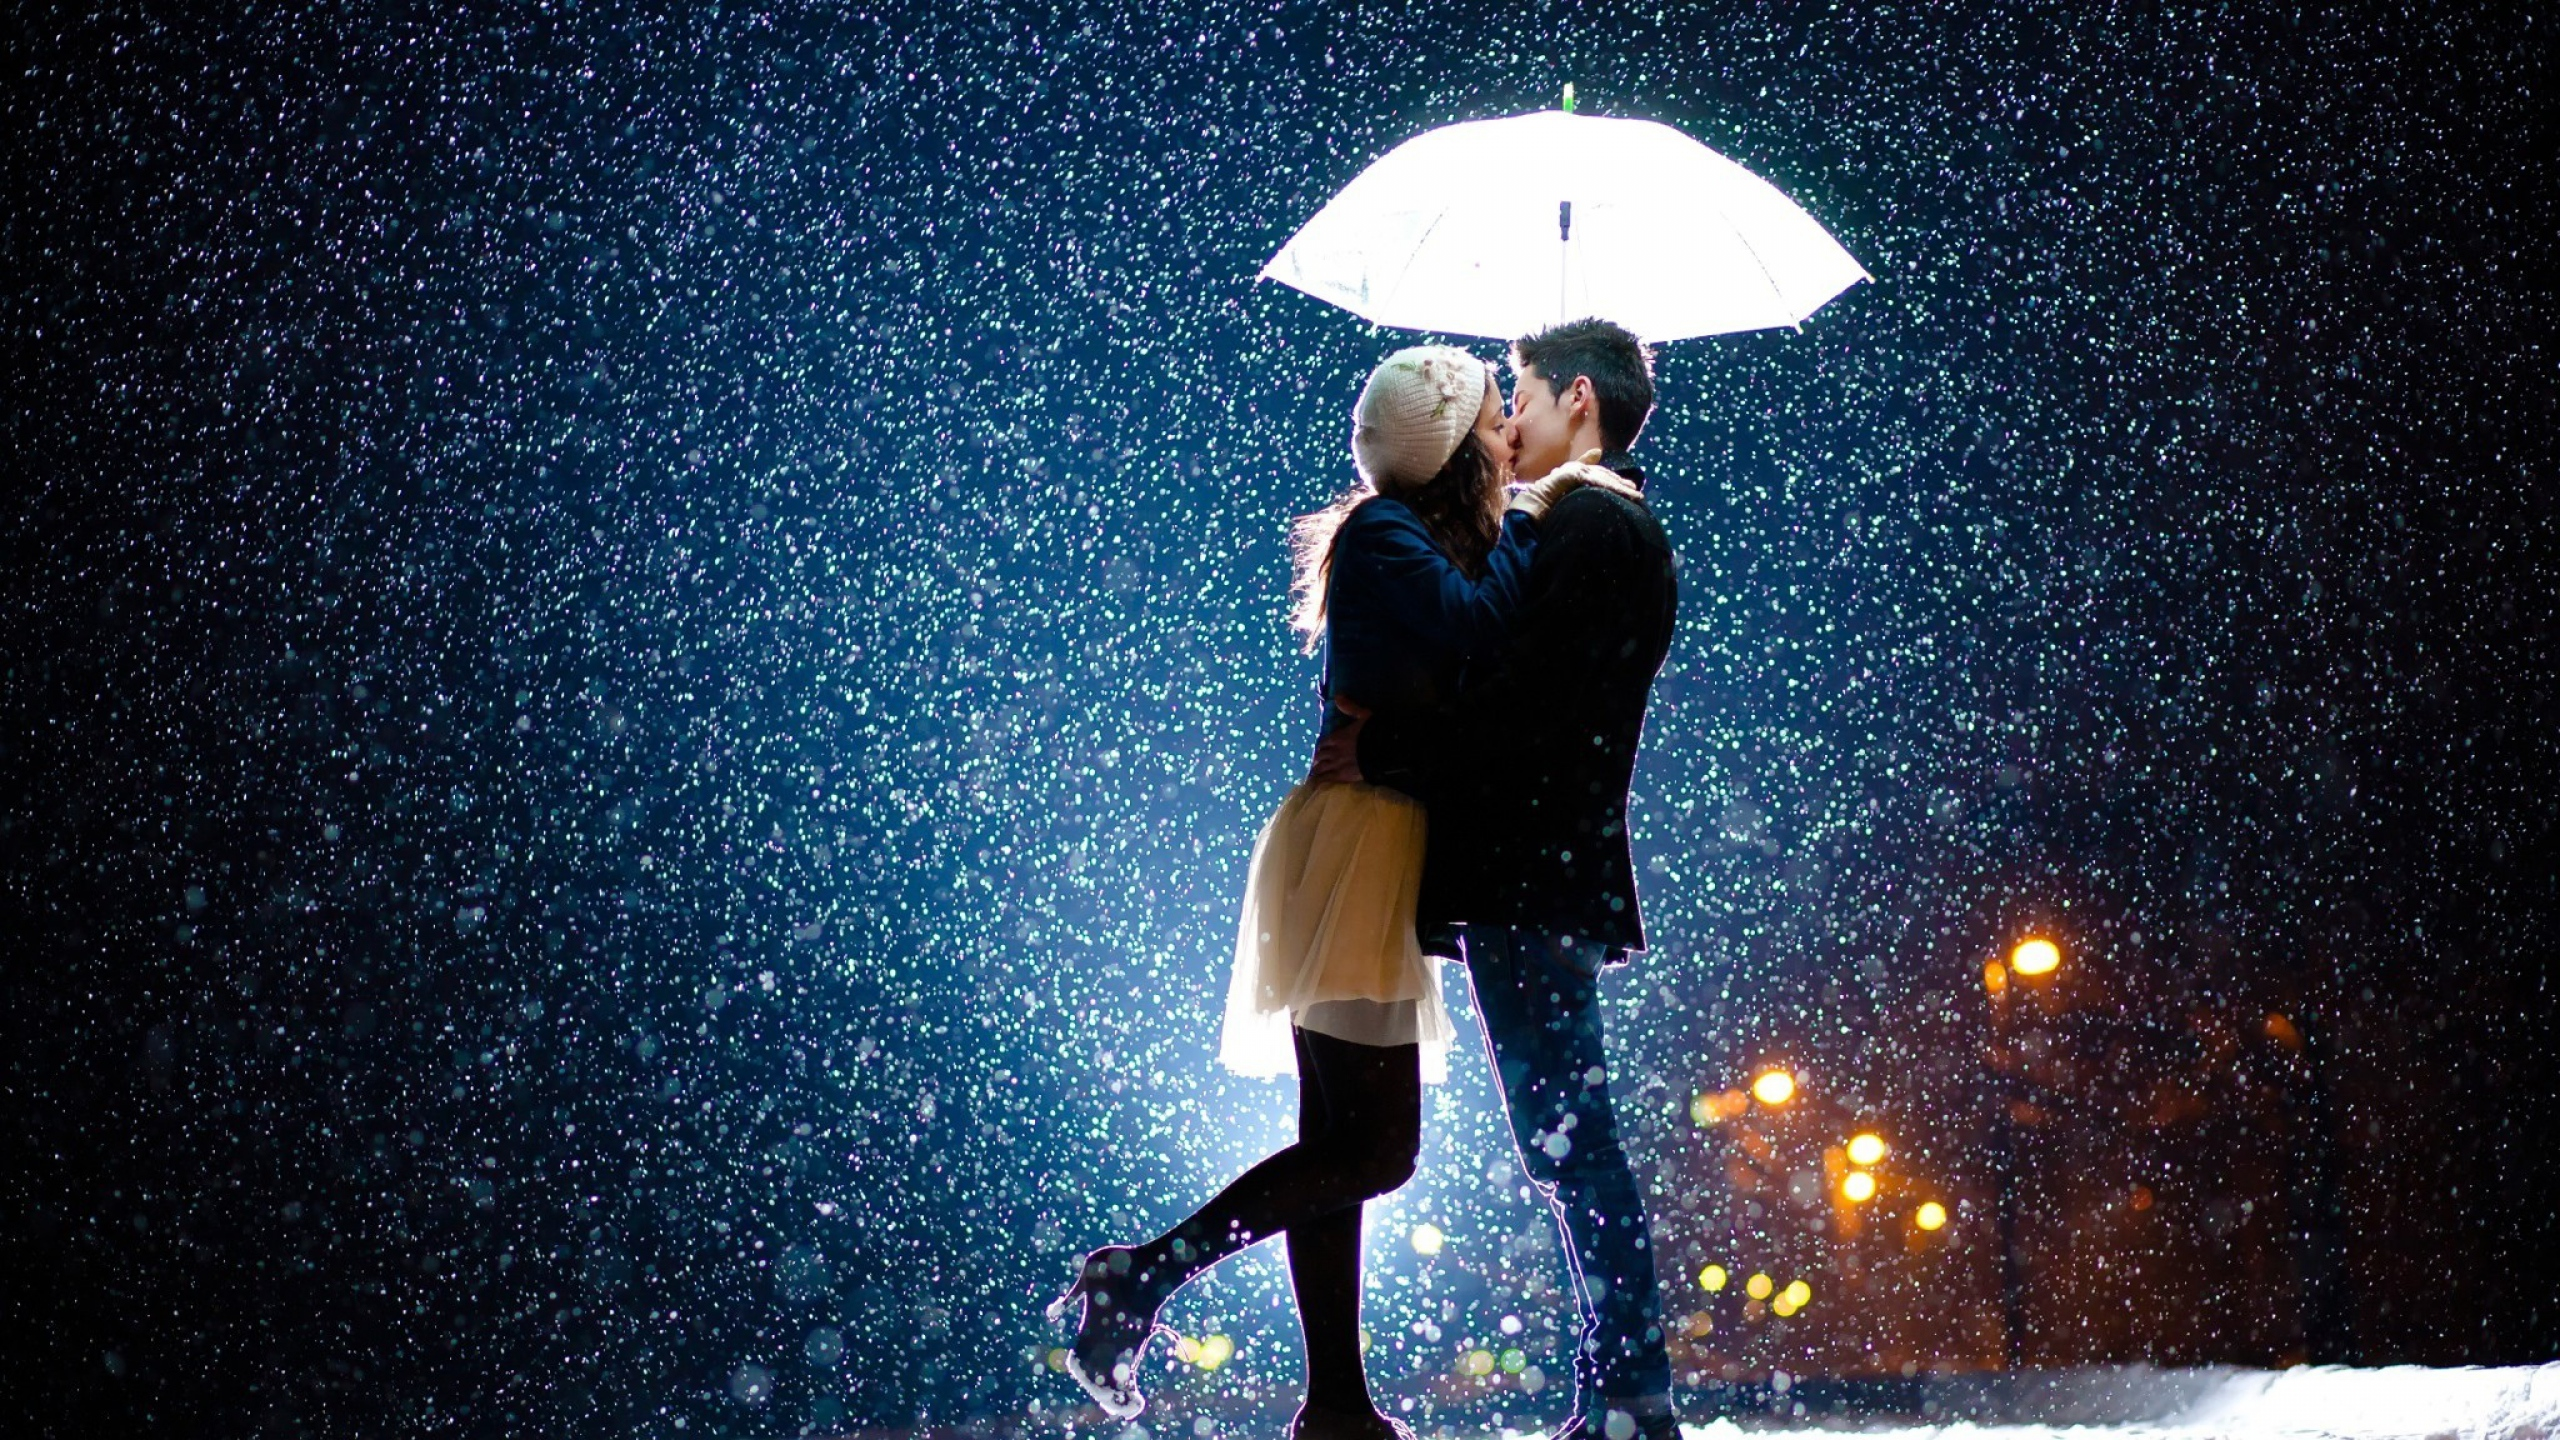 romantic couple wallpapers pictures images